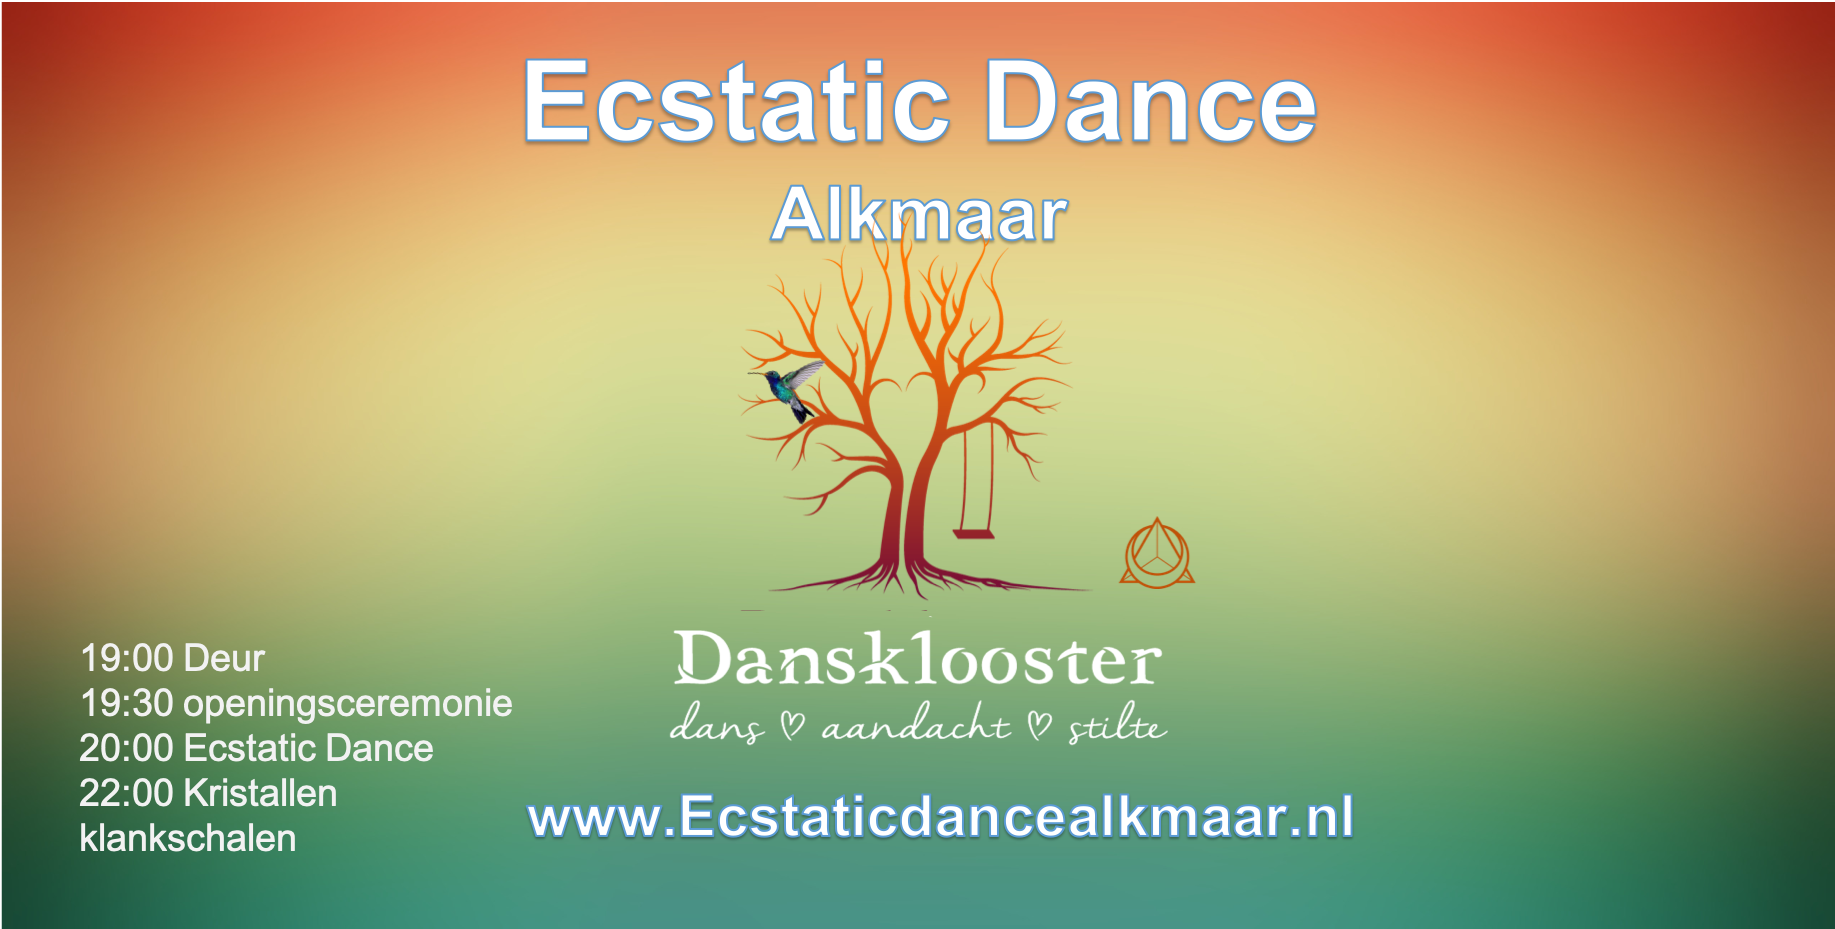 Ecstatic Dance Alkmaar by Dansklooster